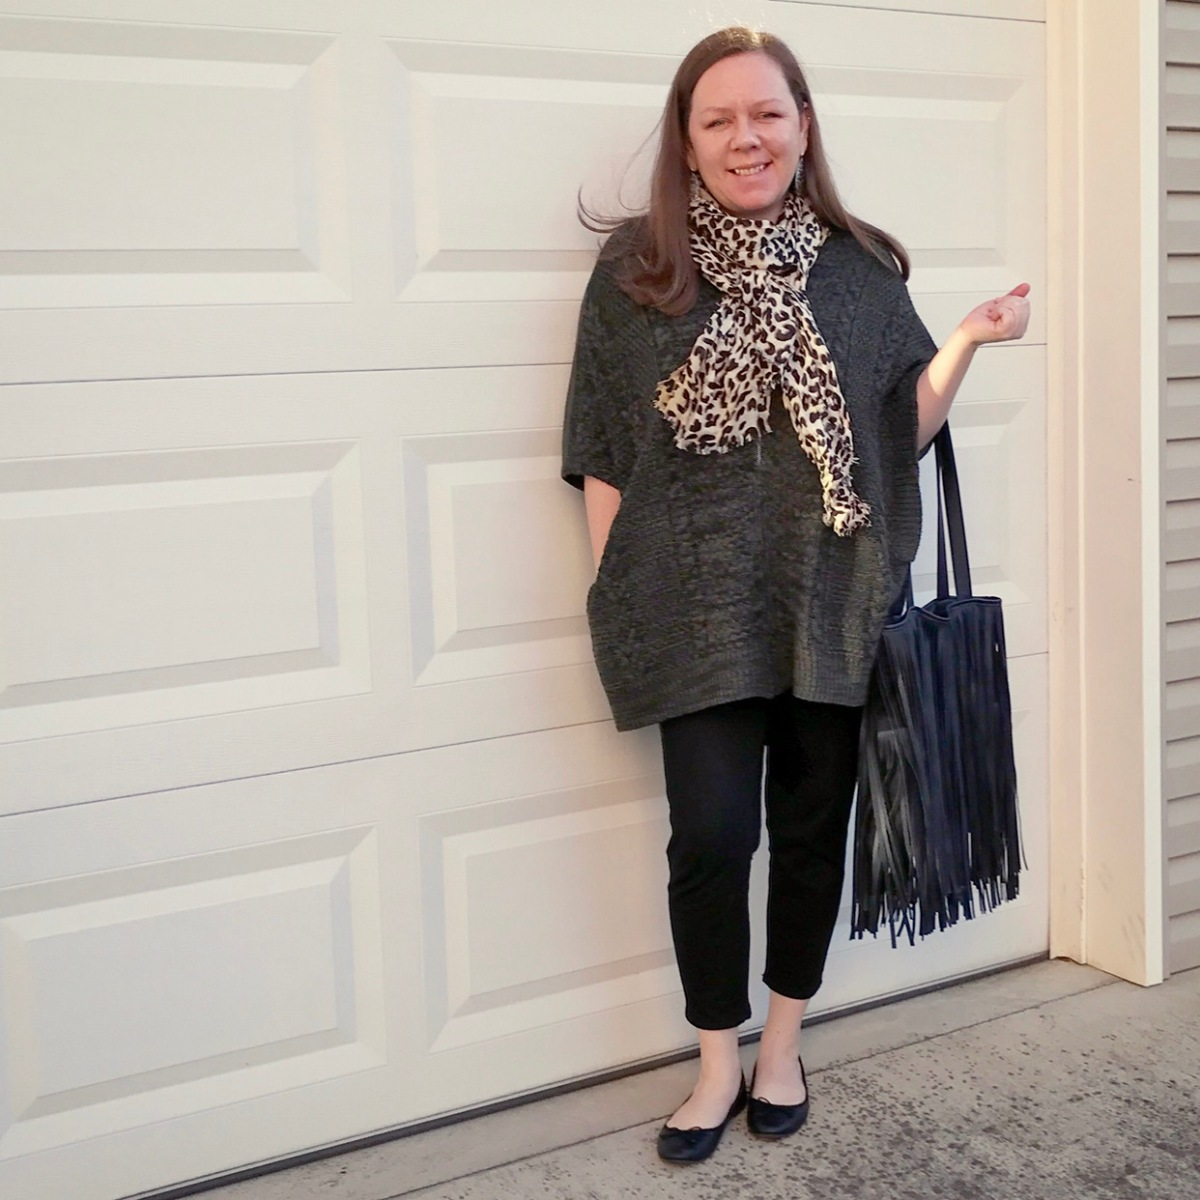 Retro Style: The Poncho #ootd